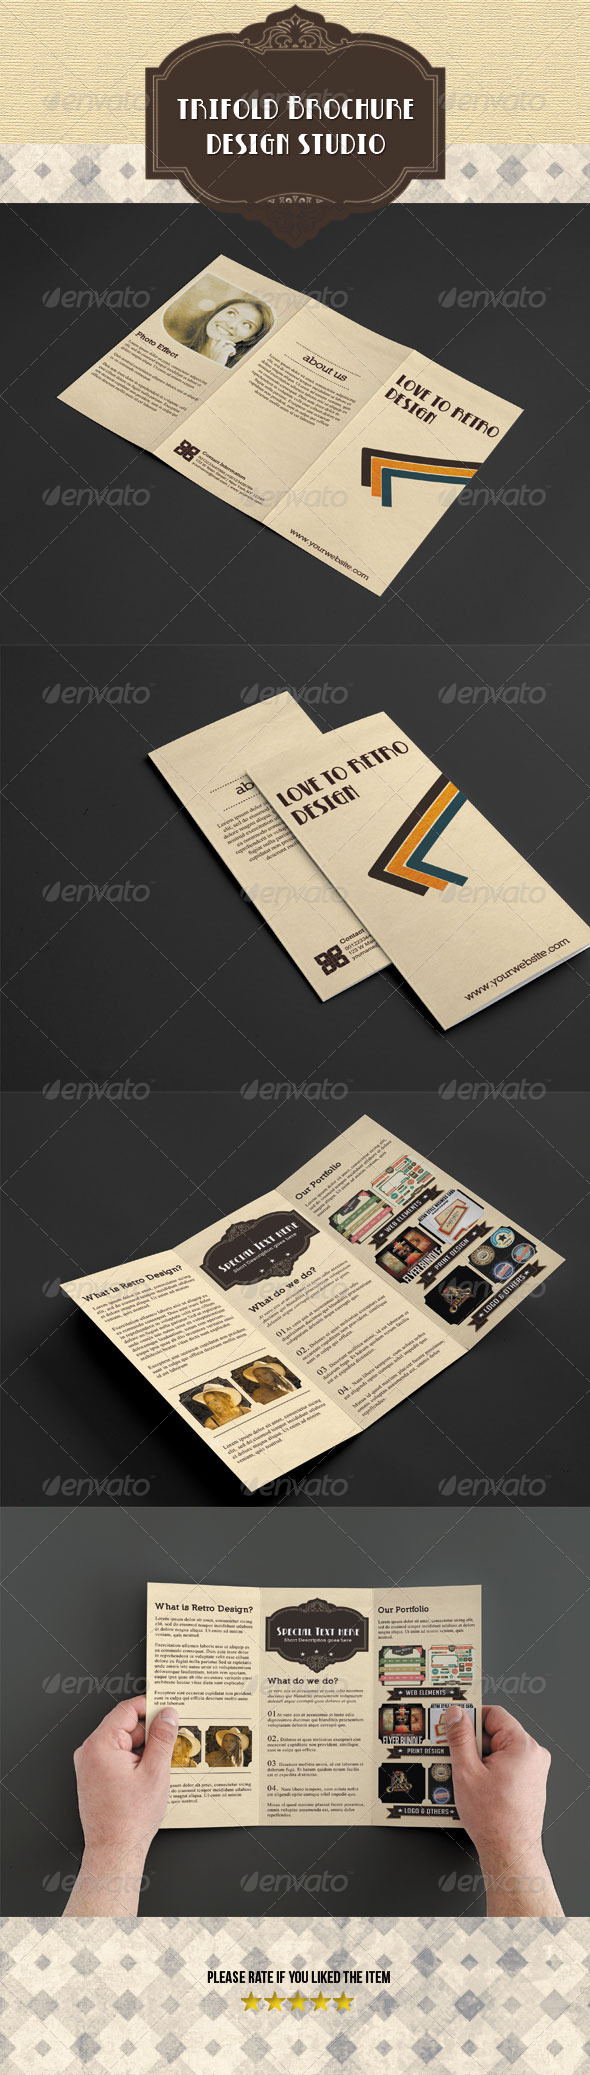 GraphicRiver Retro Trifold Brochure 5150834